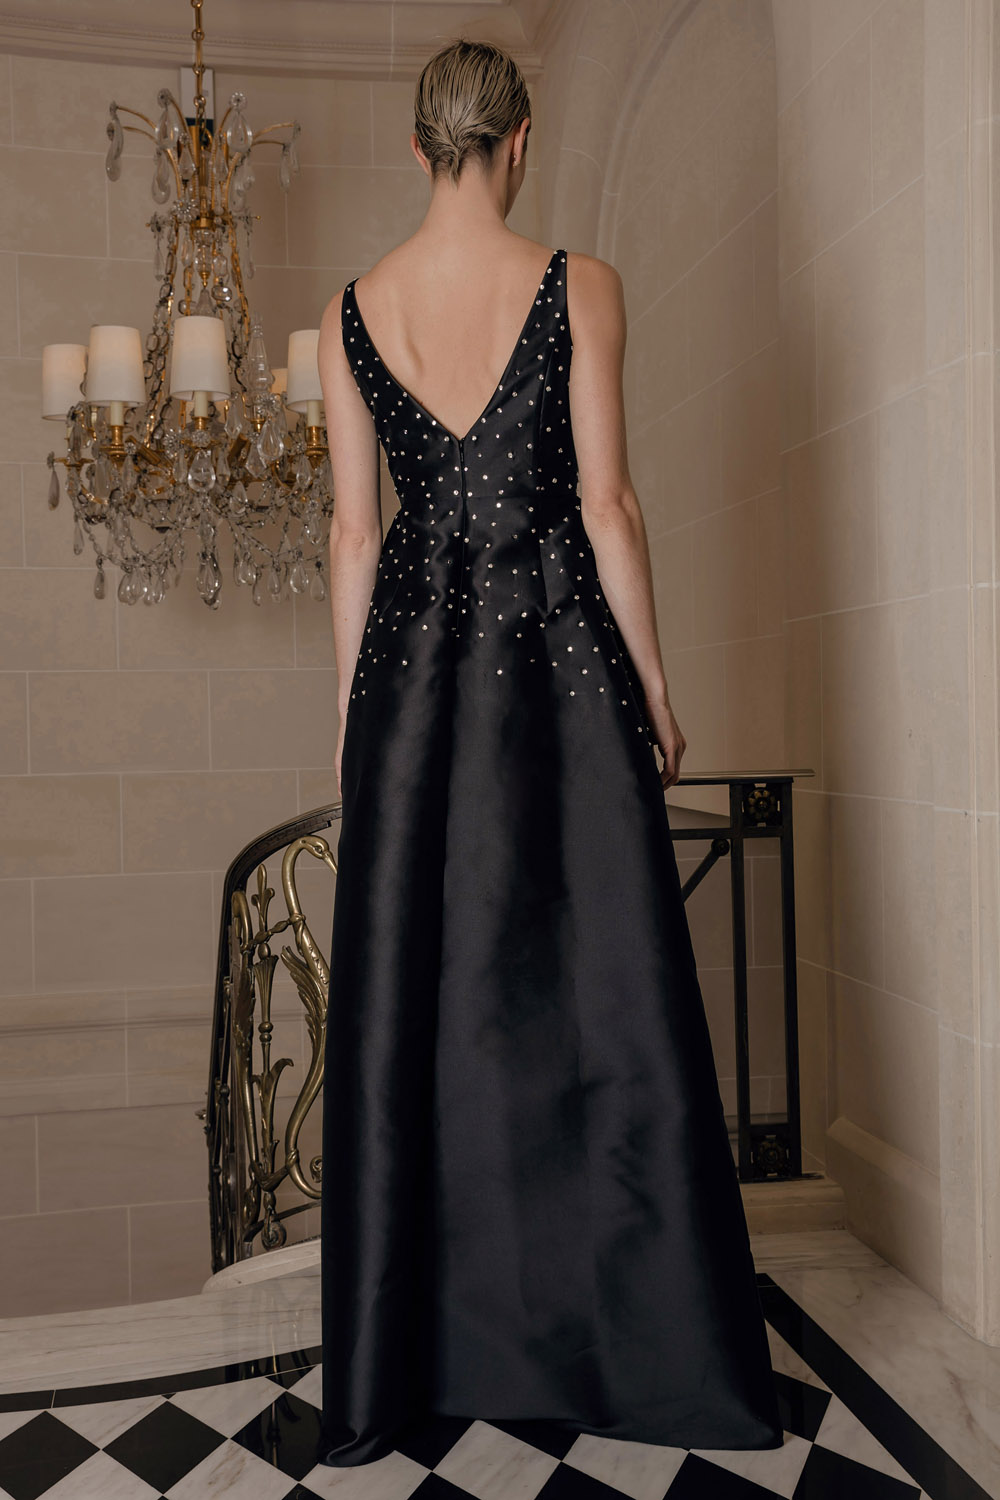 Black maxi dress with decoration